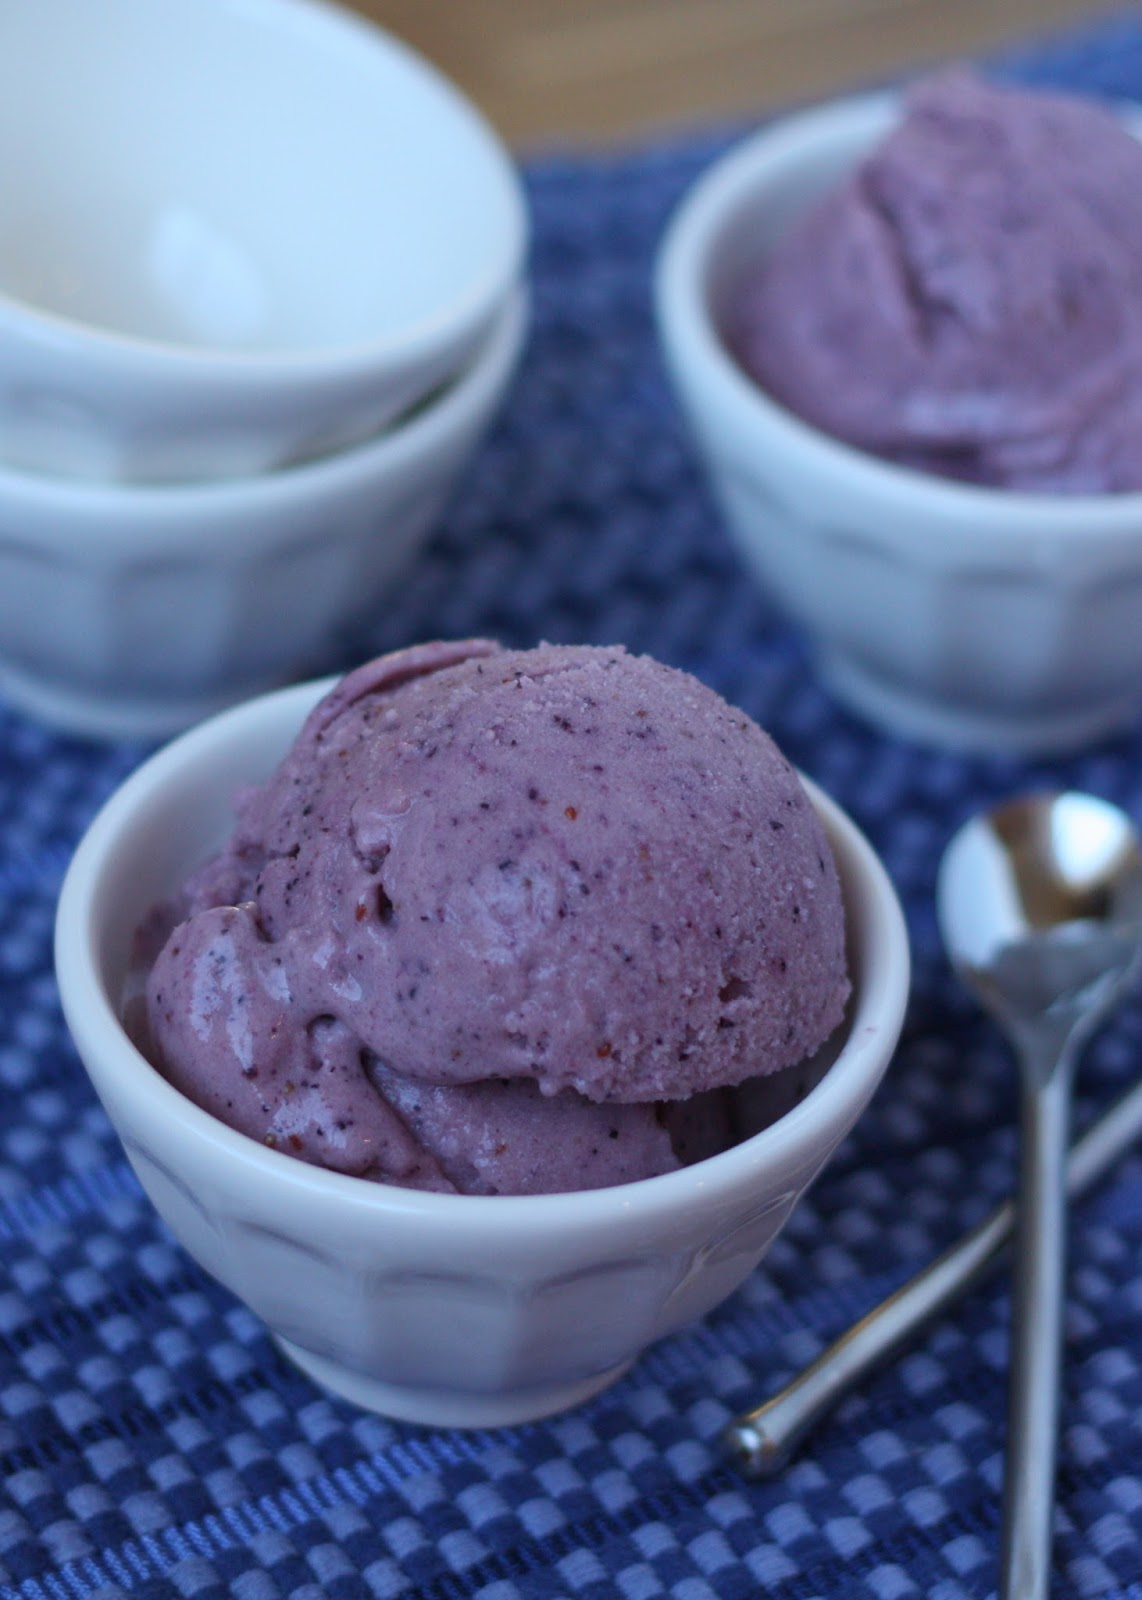 Berry Smoothie Ice Cream recipe by Barefeet In The Kitchen